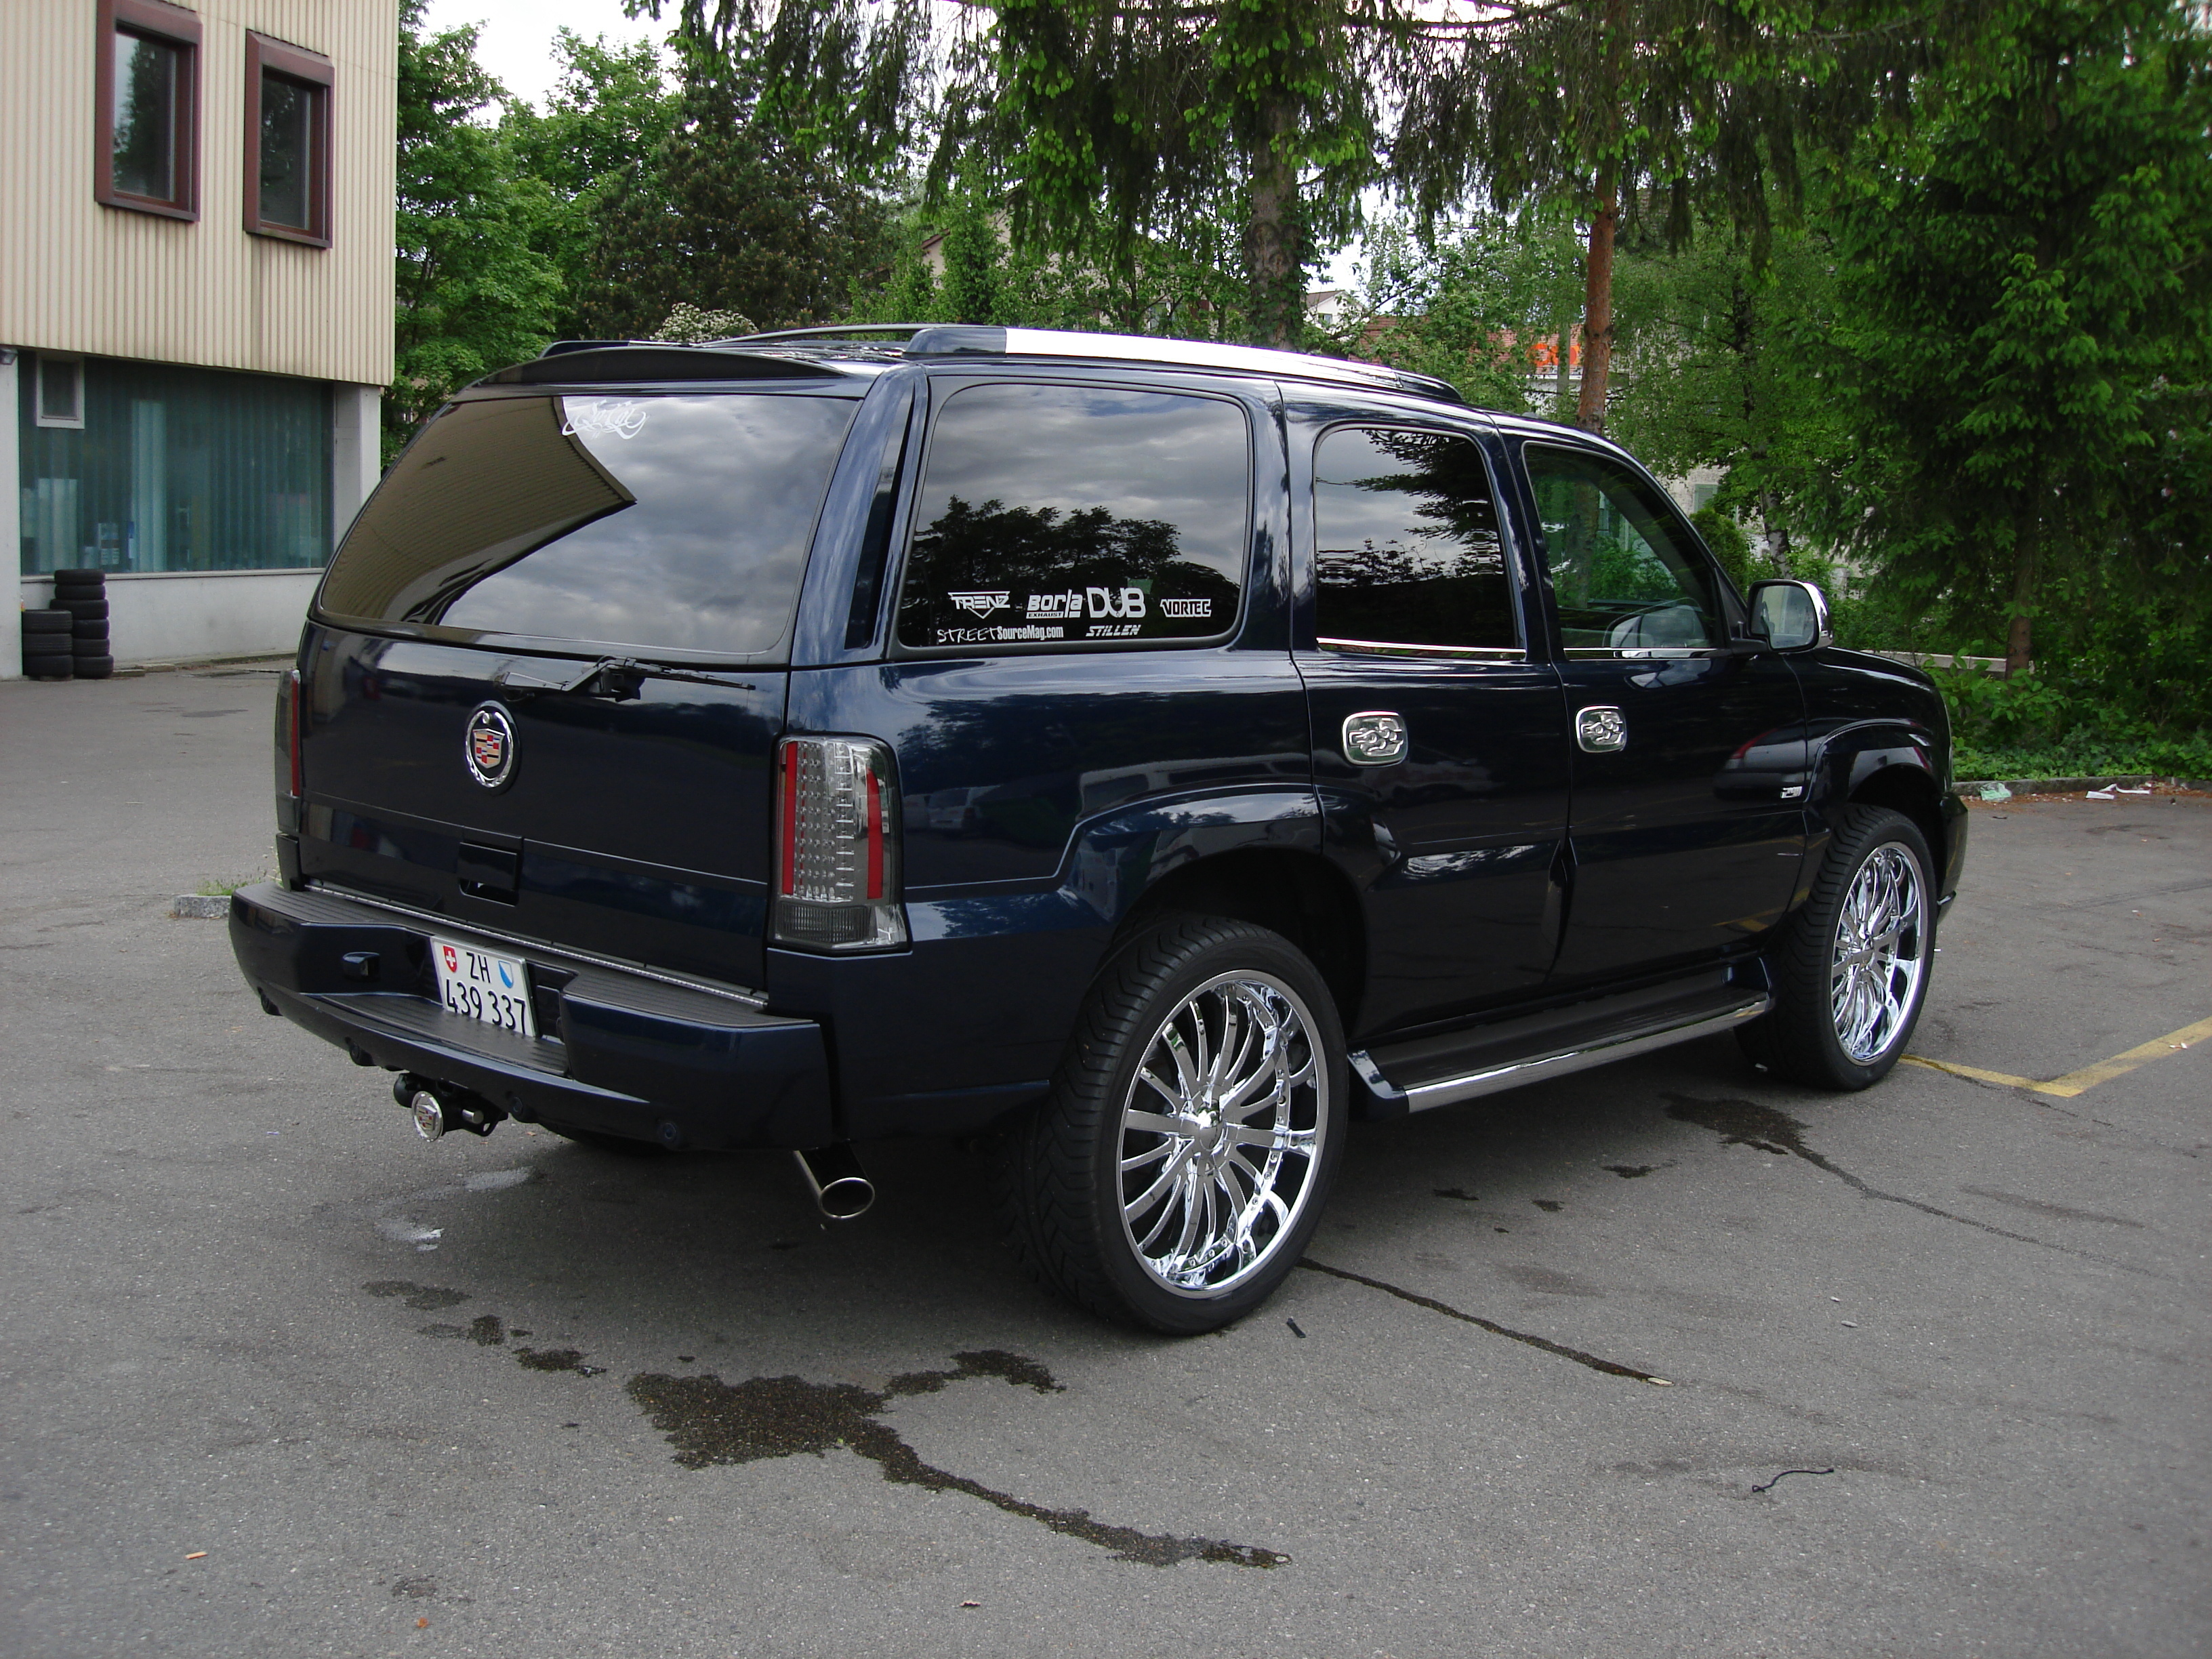 escalade in cadillac interior photo brown we accessories customs of carpet see the can that stock highlights molding img to you here first replaced findlay some match runs upgrades throughout